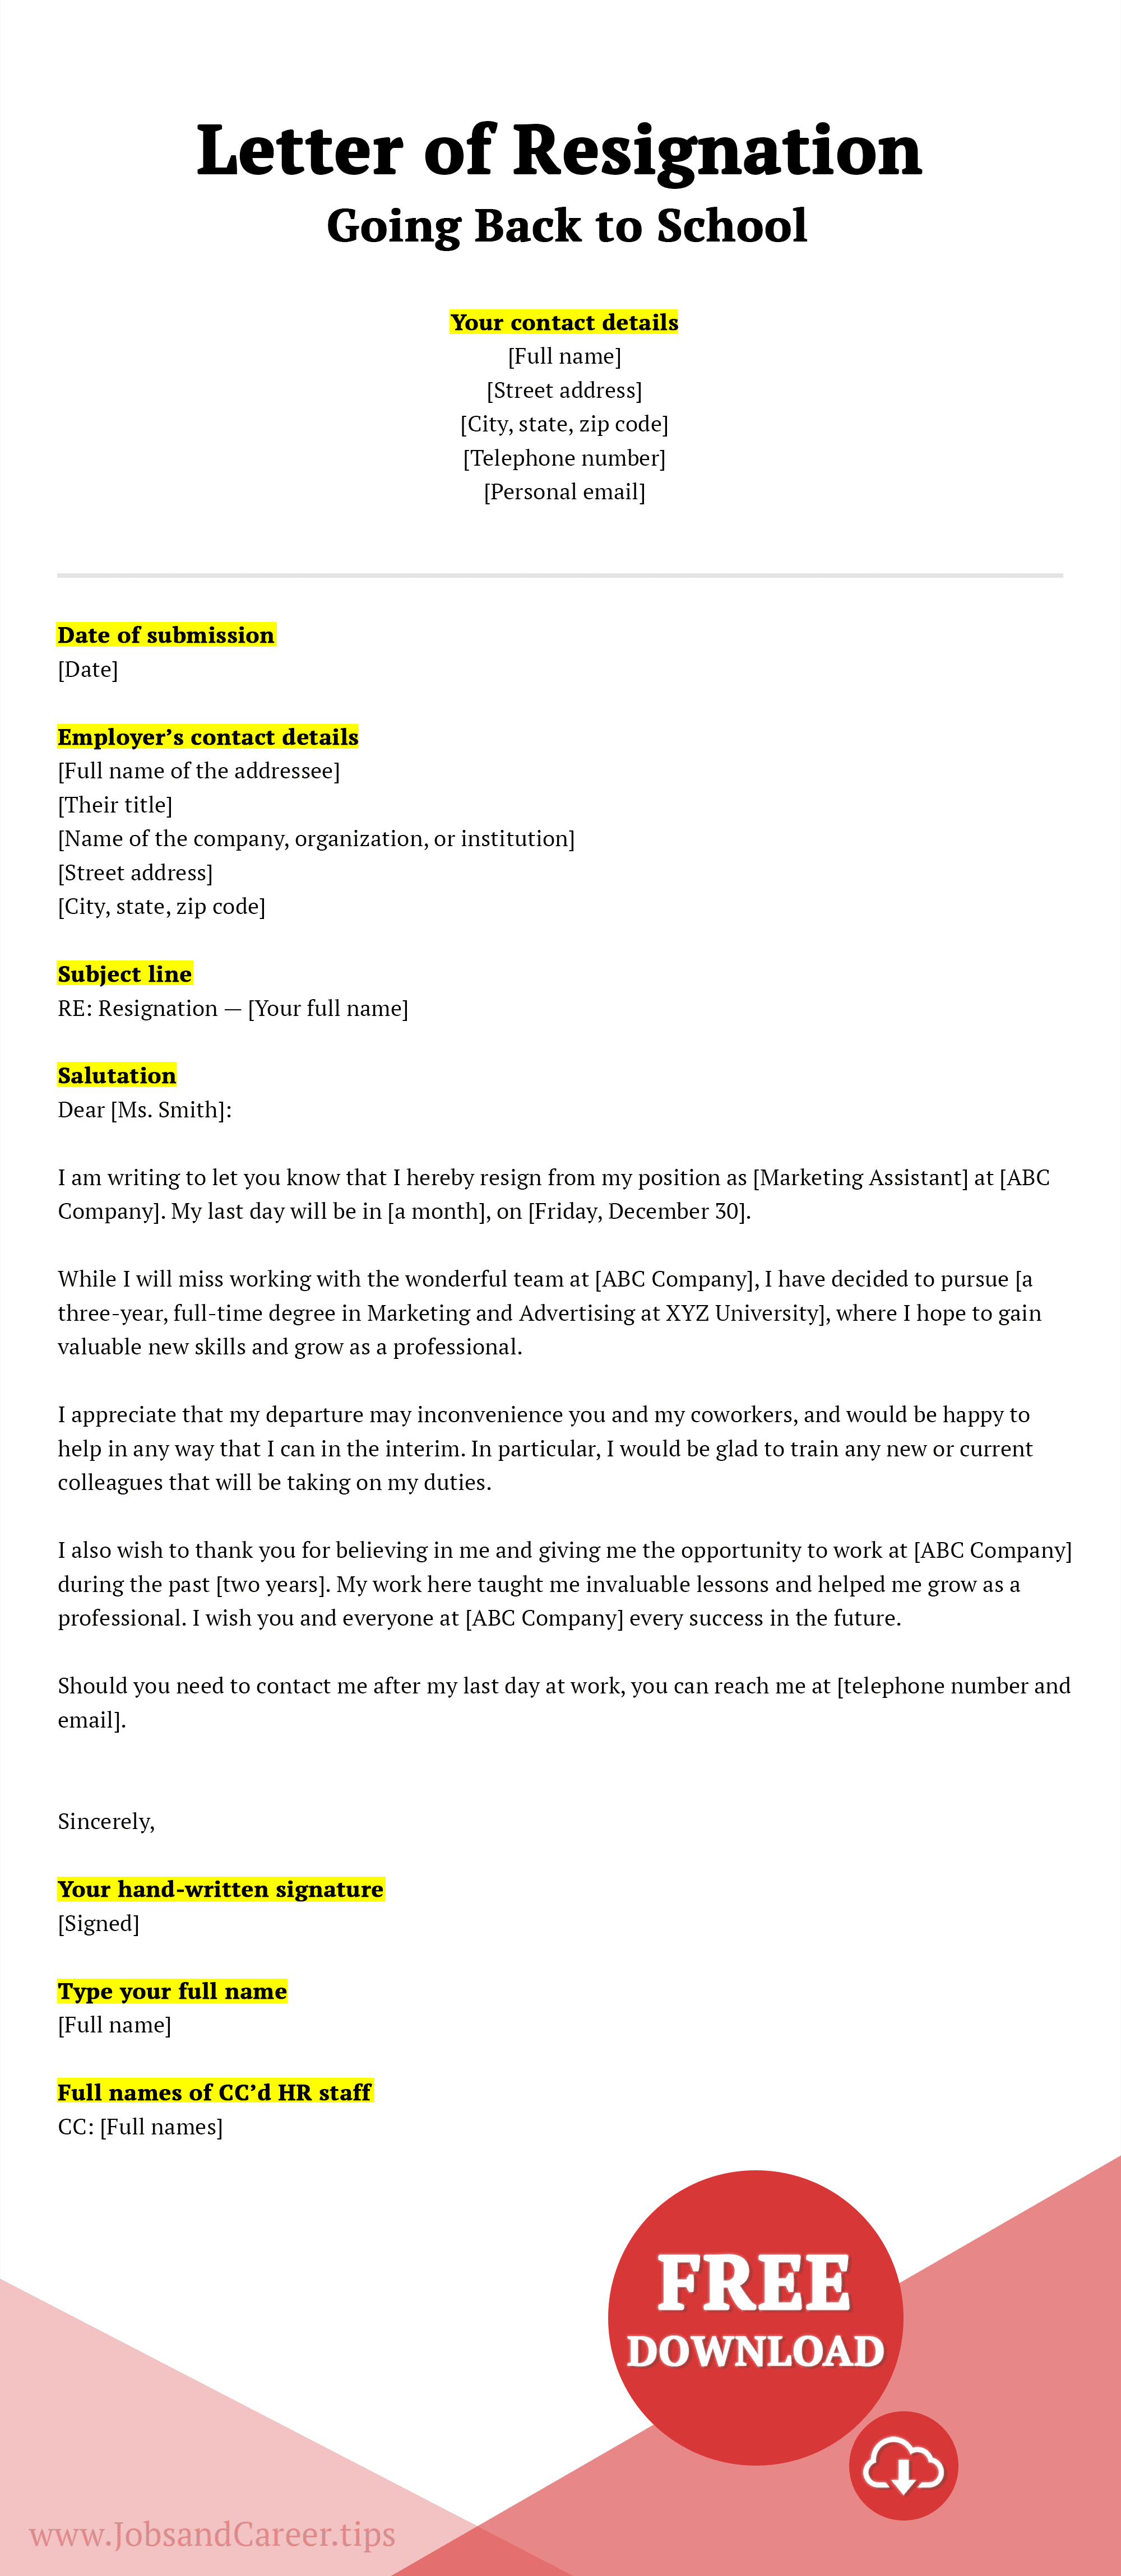 Click to download a going back to school resignation letter example